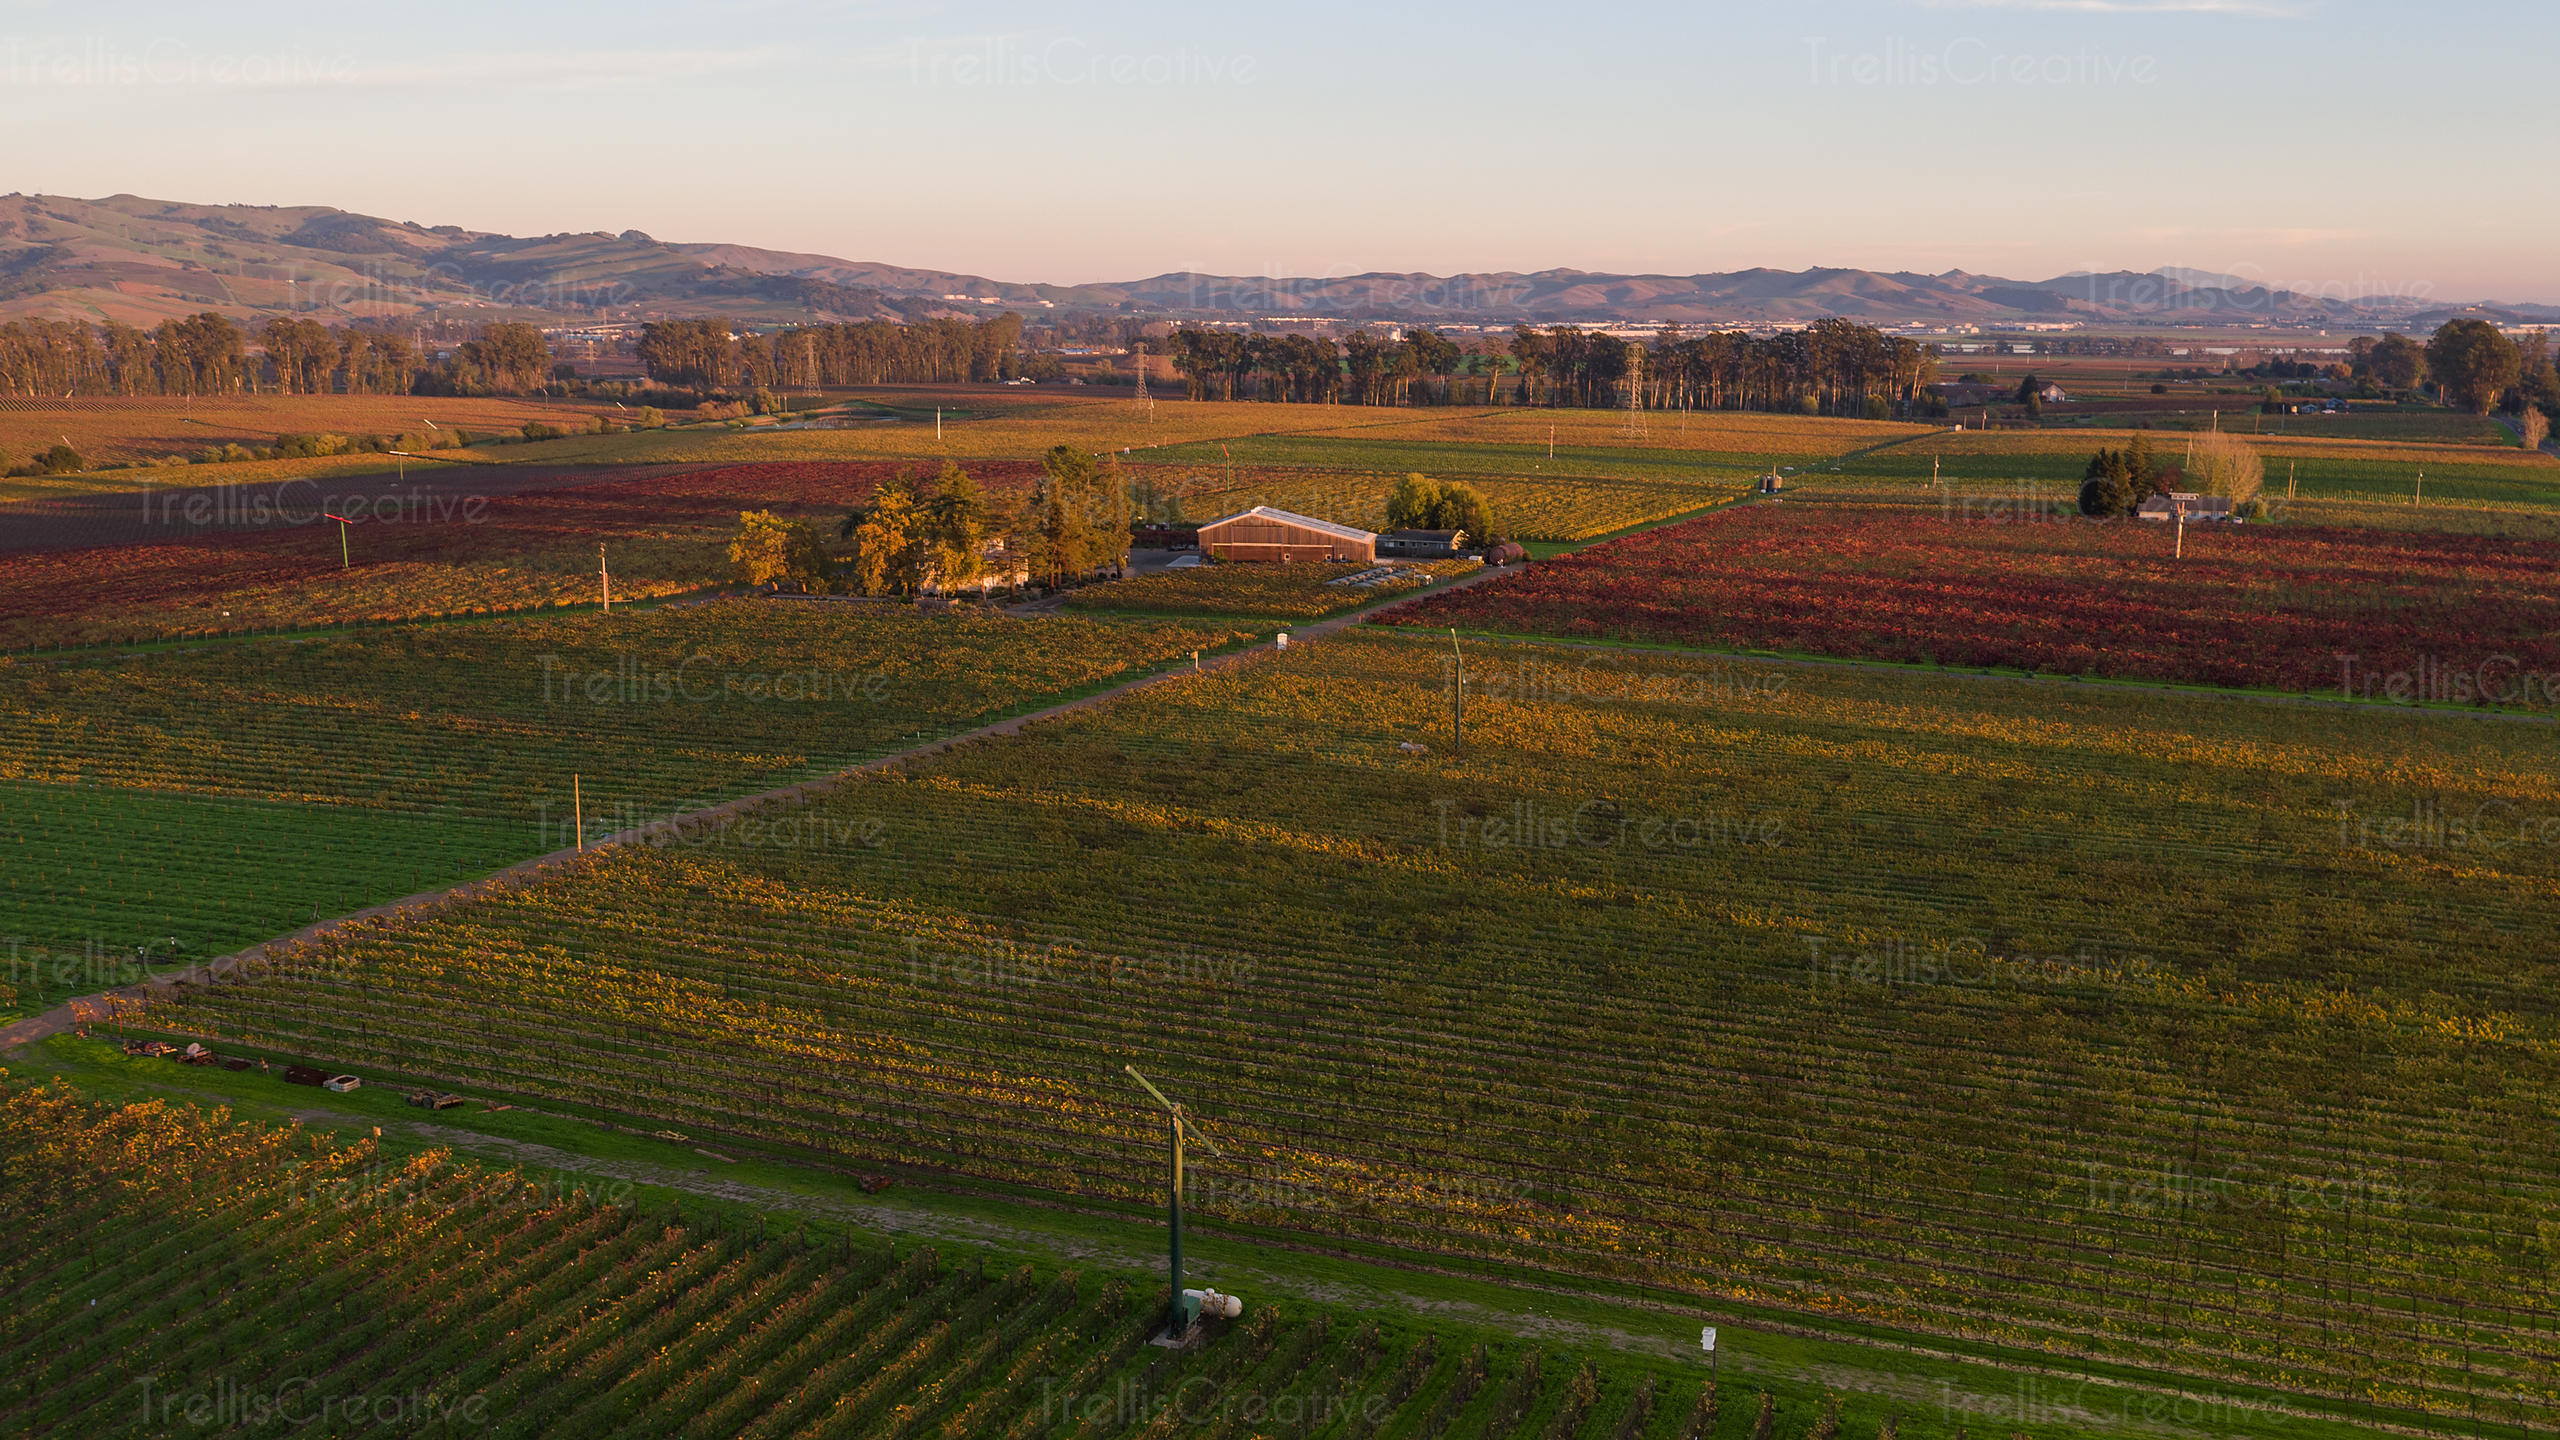 Beautiful aerial views of vines changeing color in the fall